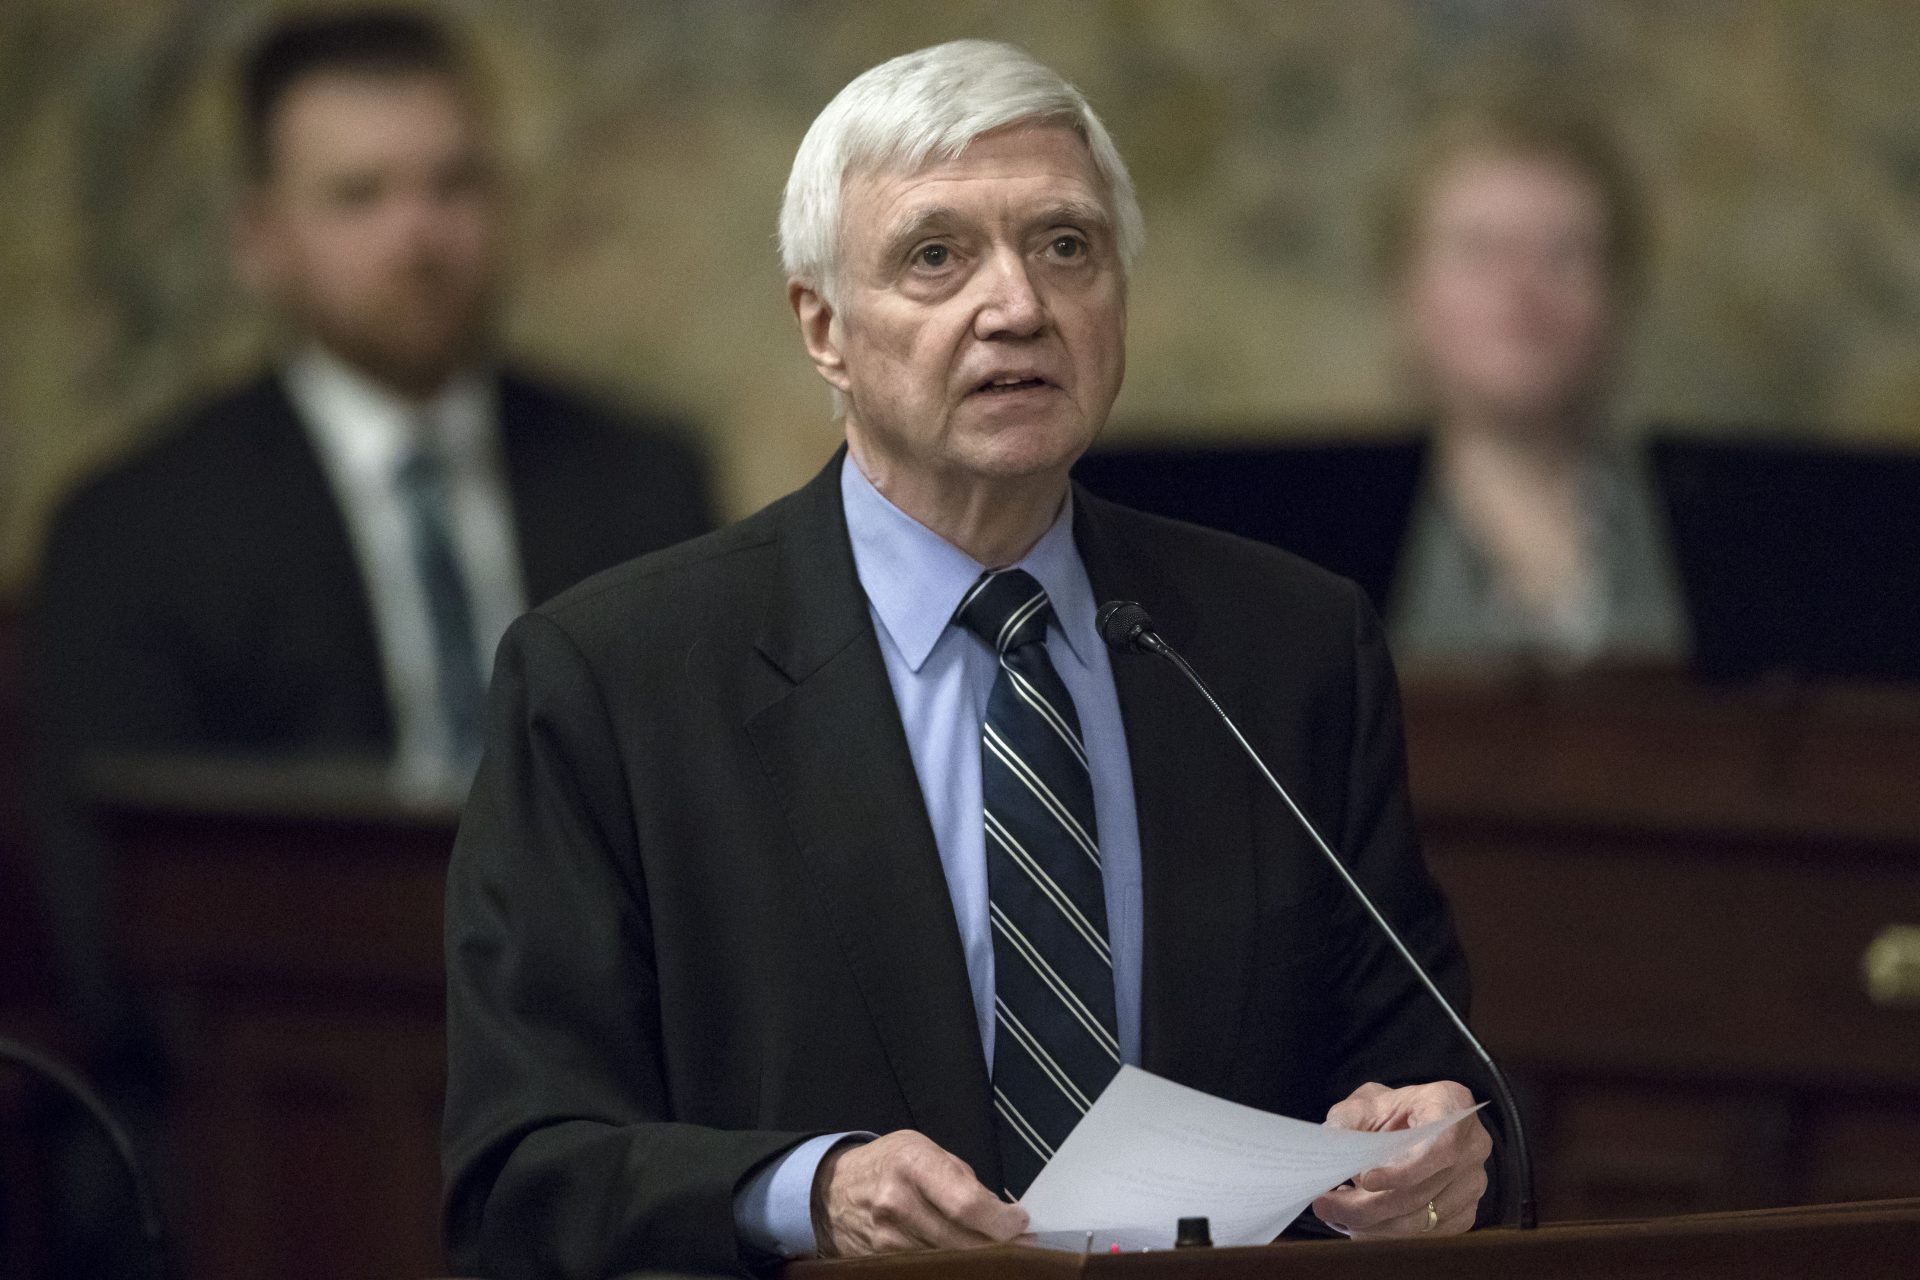 FILE PHOTO: House Minority Leader Frank Dermody, D-Allegheny, speaks before Pennsylvania lawmakers, Wednesday, April 10, 2019, at the state Capitol in Harrisburg, Pa.